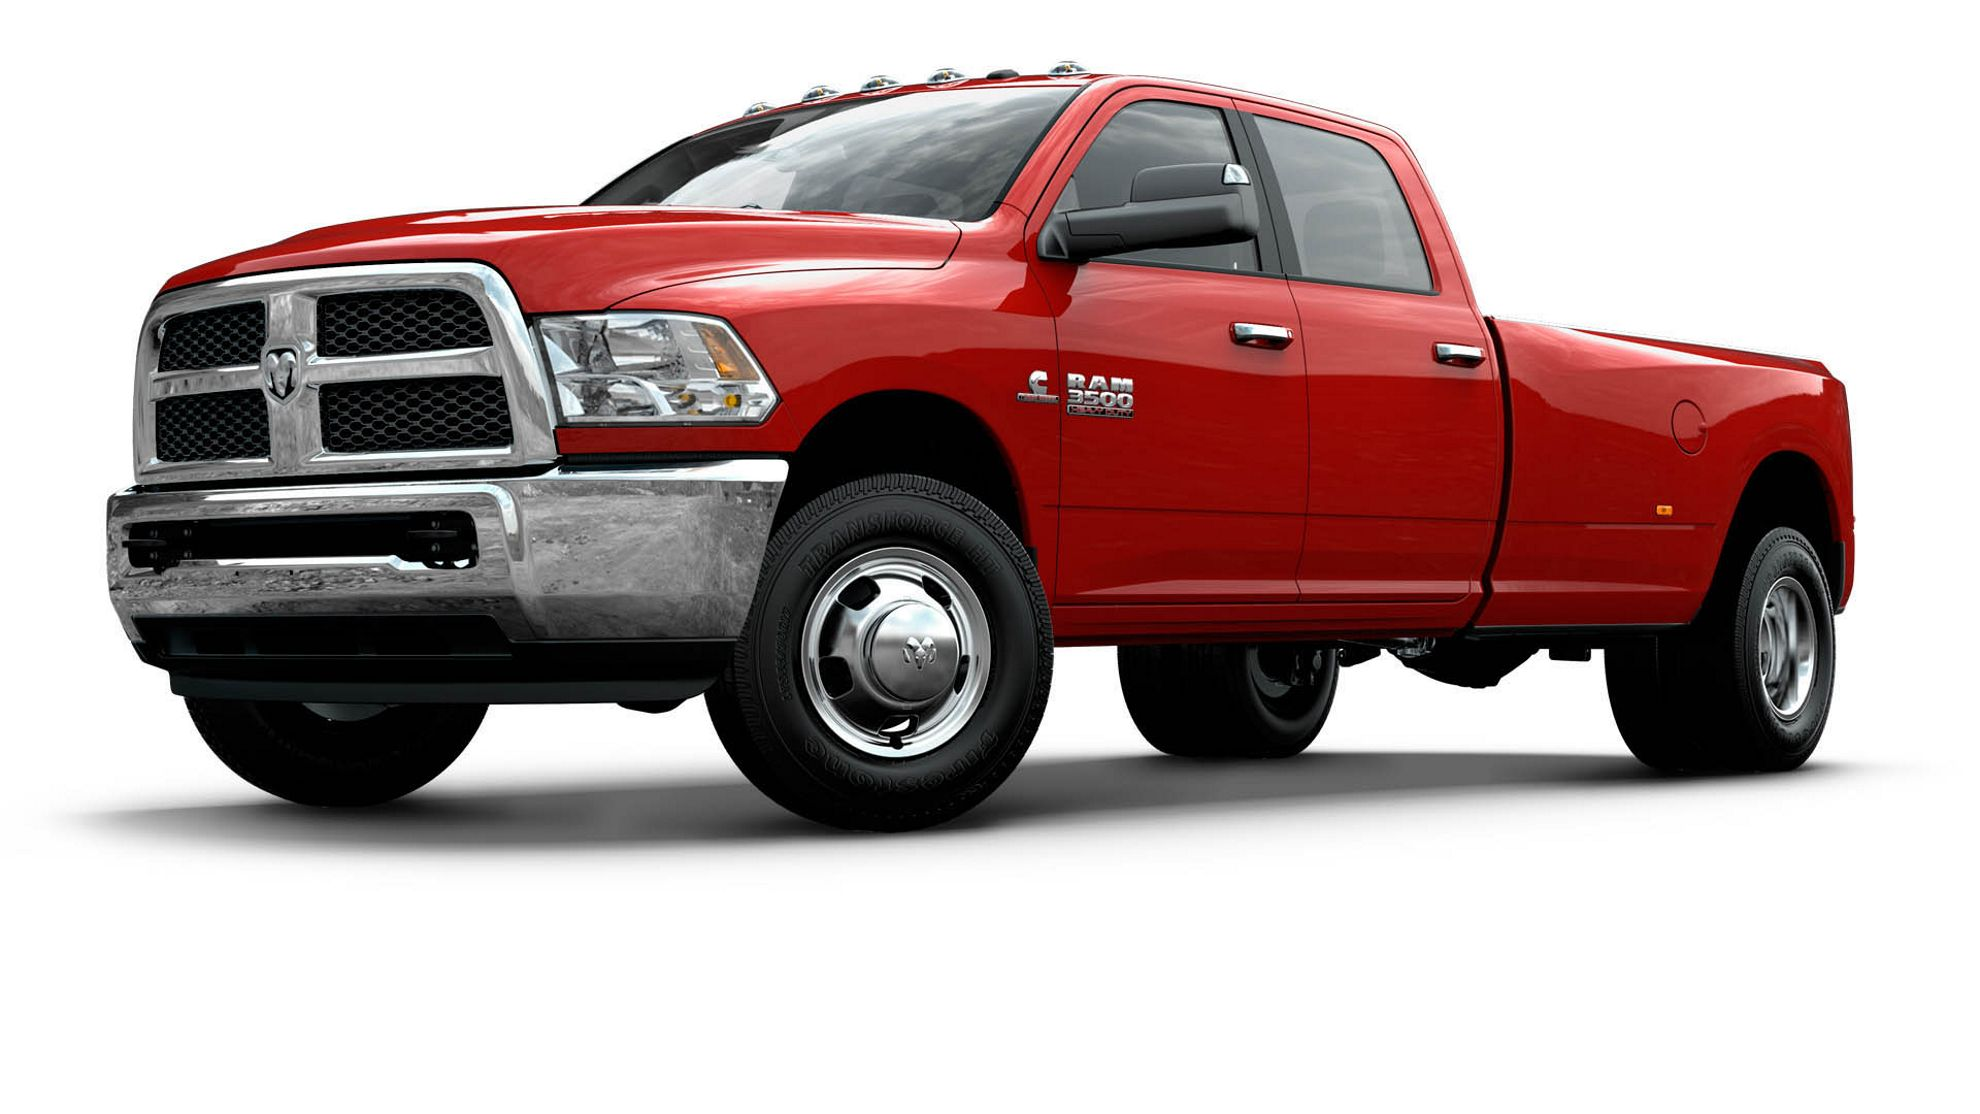 2014 dodge ram heavy duty. Black Bedroom Furniture Sets. Home Design Ideas